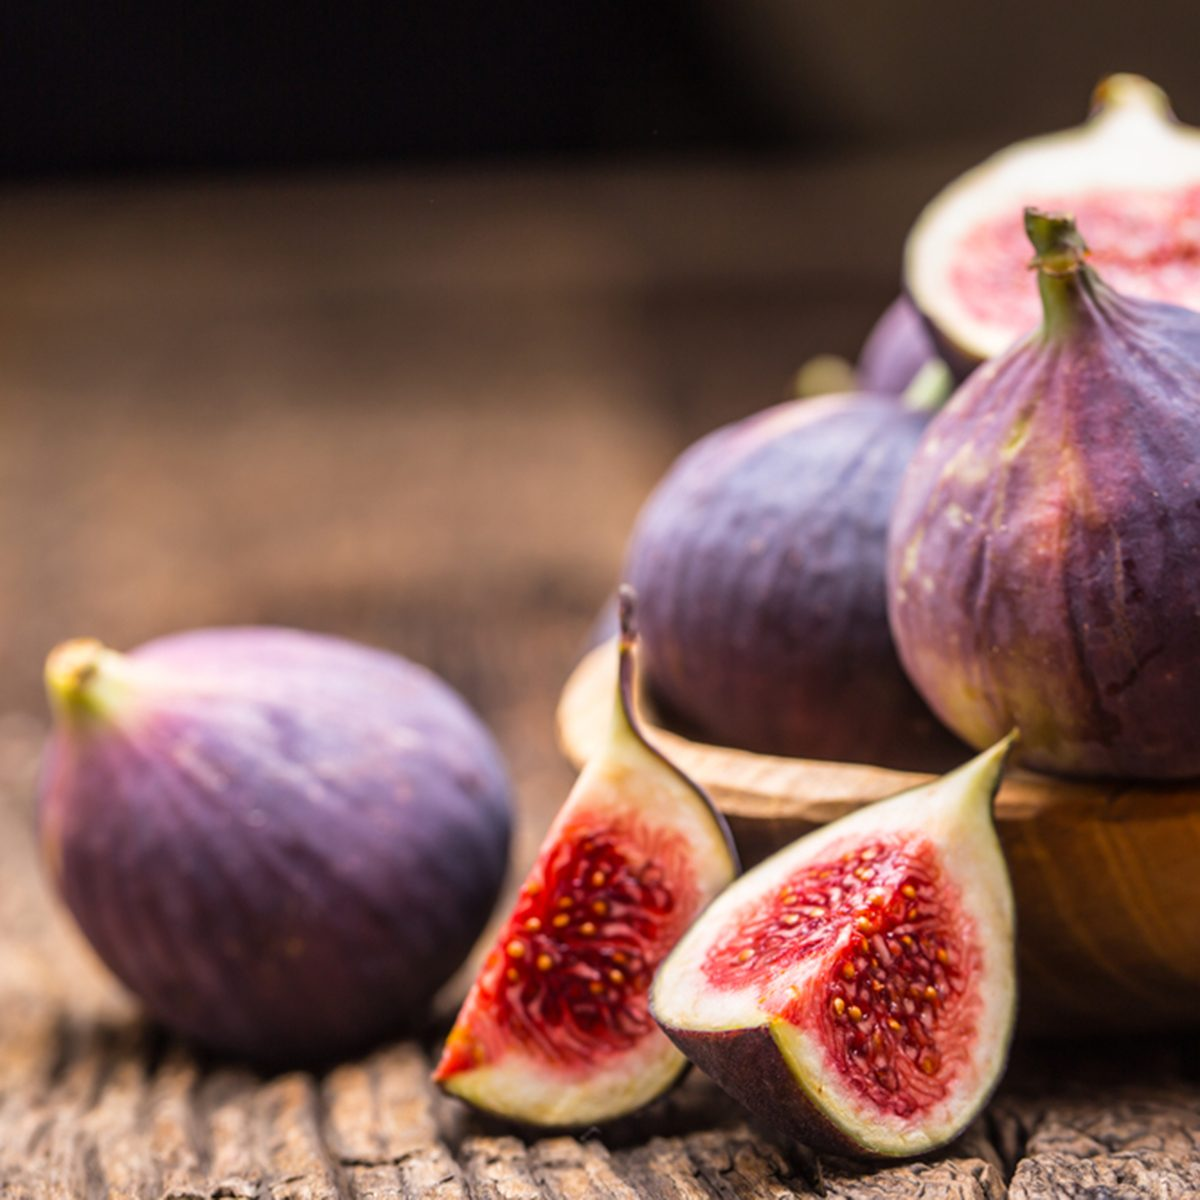 A few figs in a bowl on an old wooden background.; Shutterstock ID 743841358; Job (TFH, TOH, RD, BNB, CWM, CM): TOH